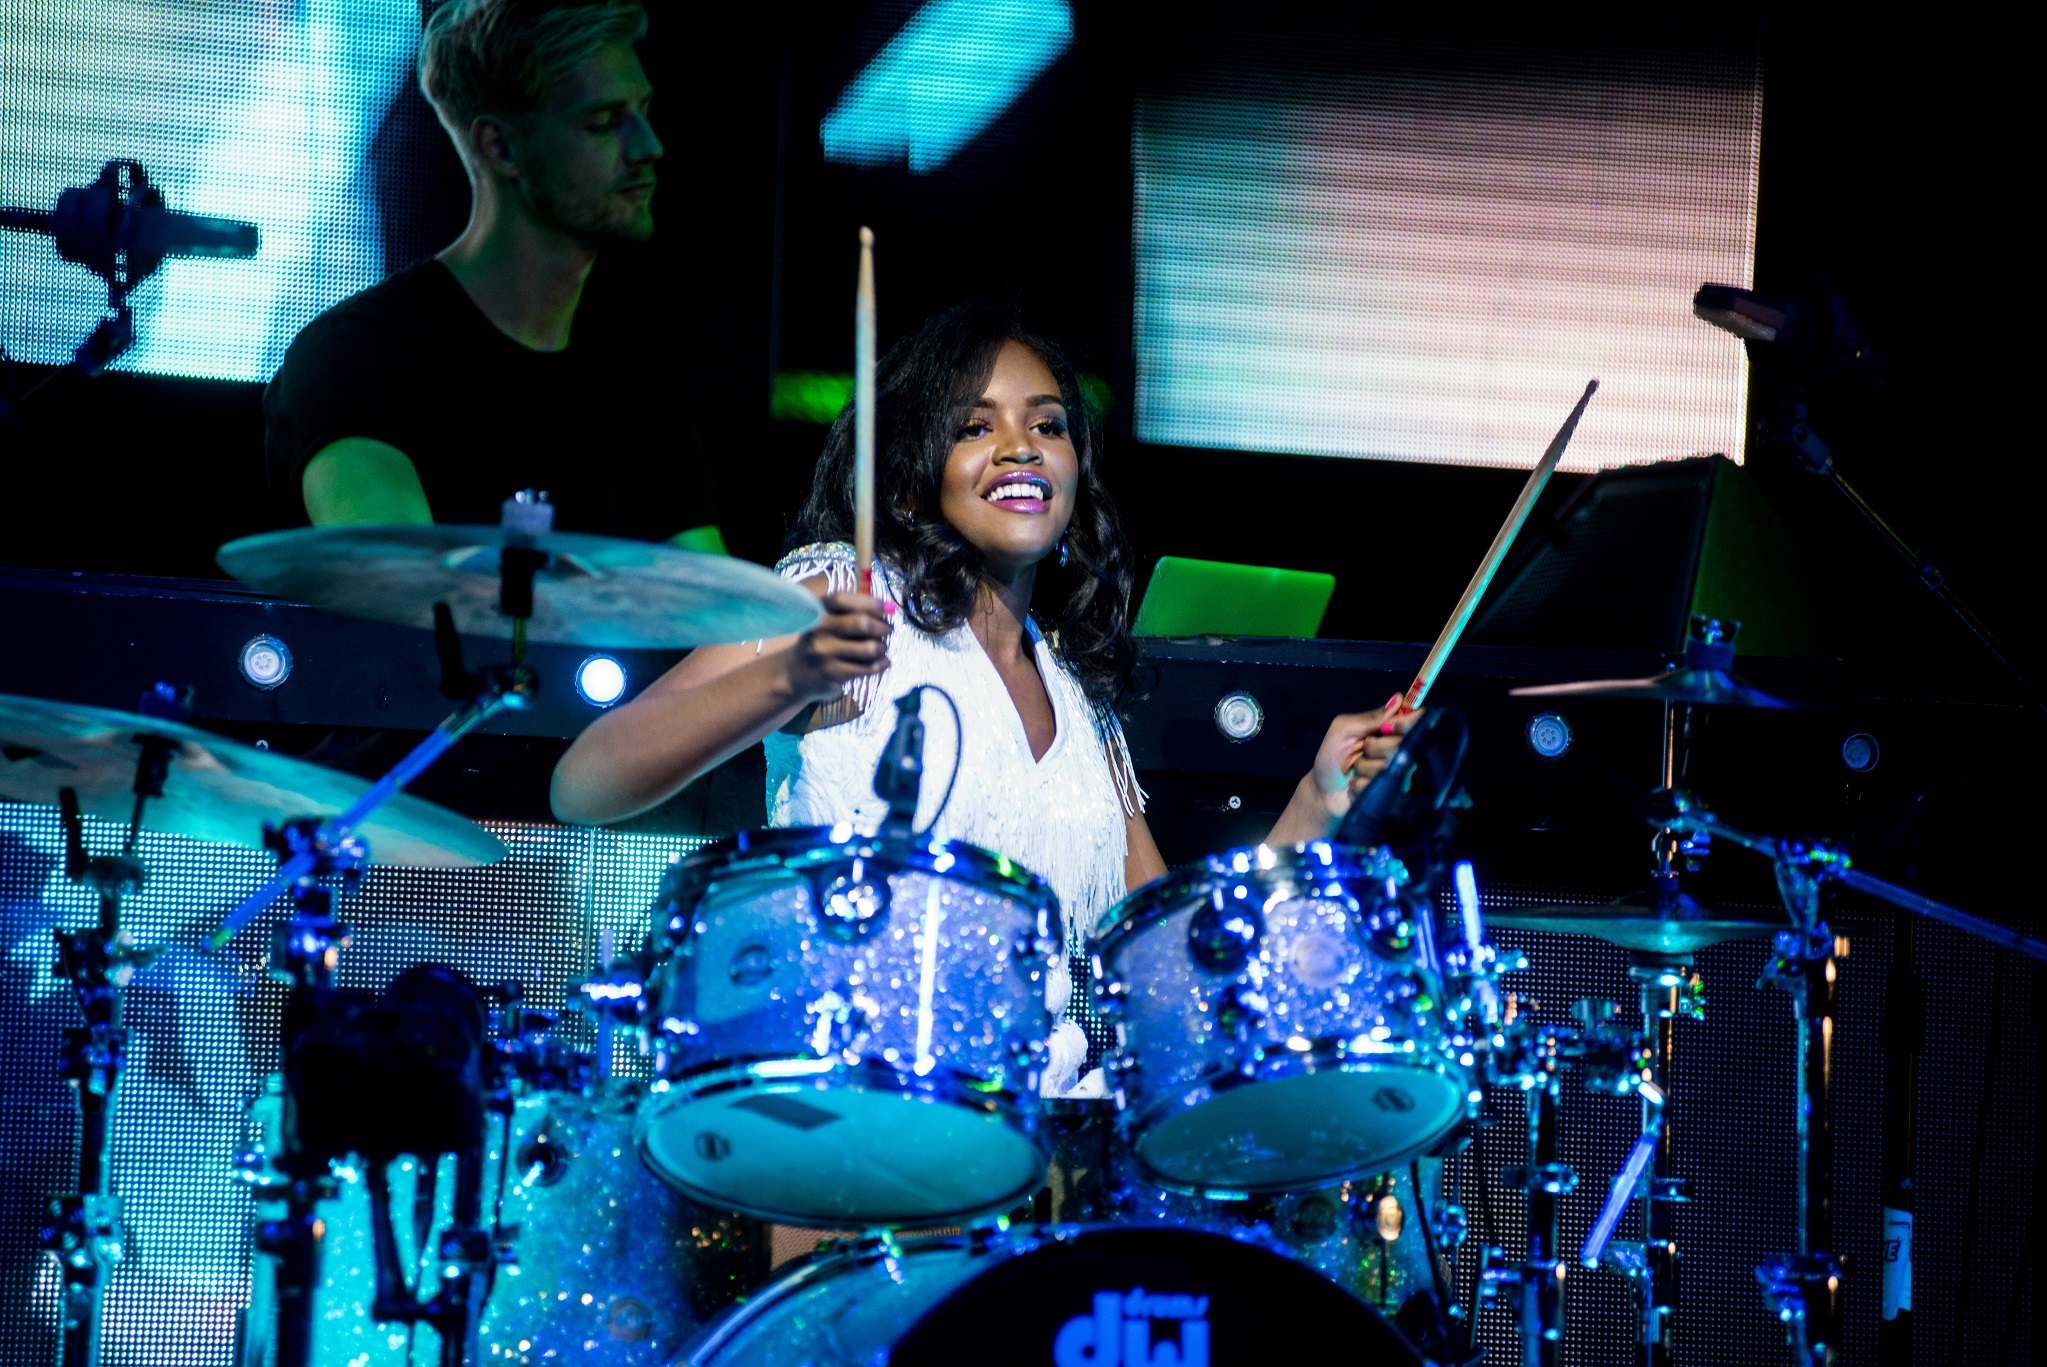 Glorious-Singer-Livetronica Drummer-Producer-Songwriter-Marquee-Nightclub-Video-New York-NY-40lr.jpg